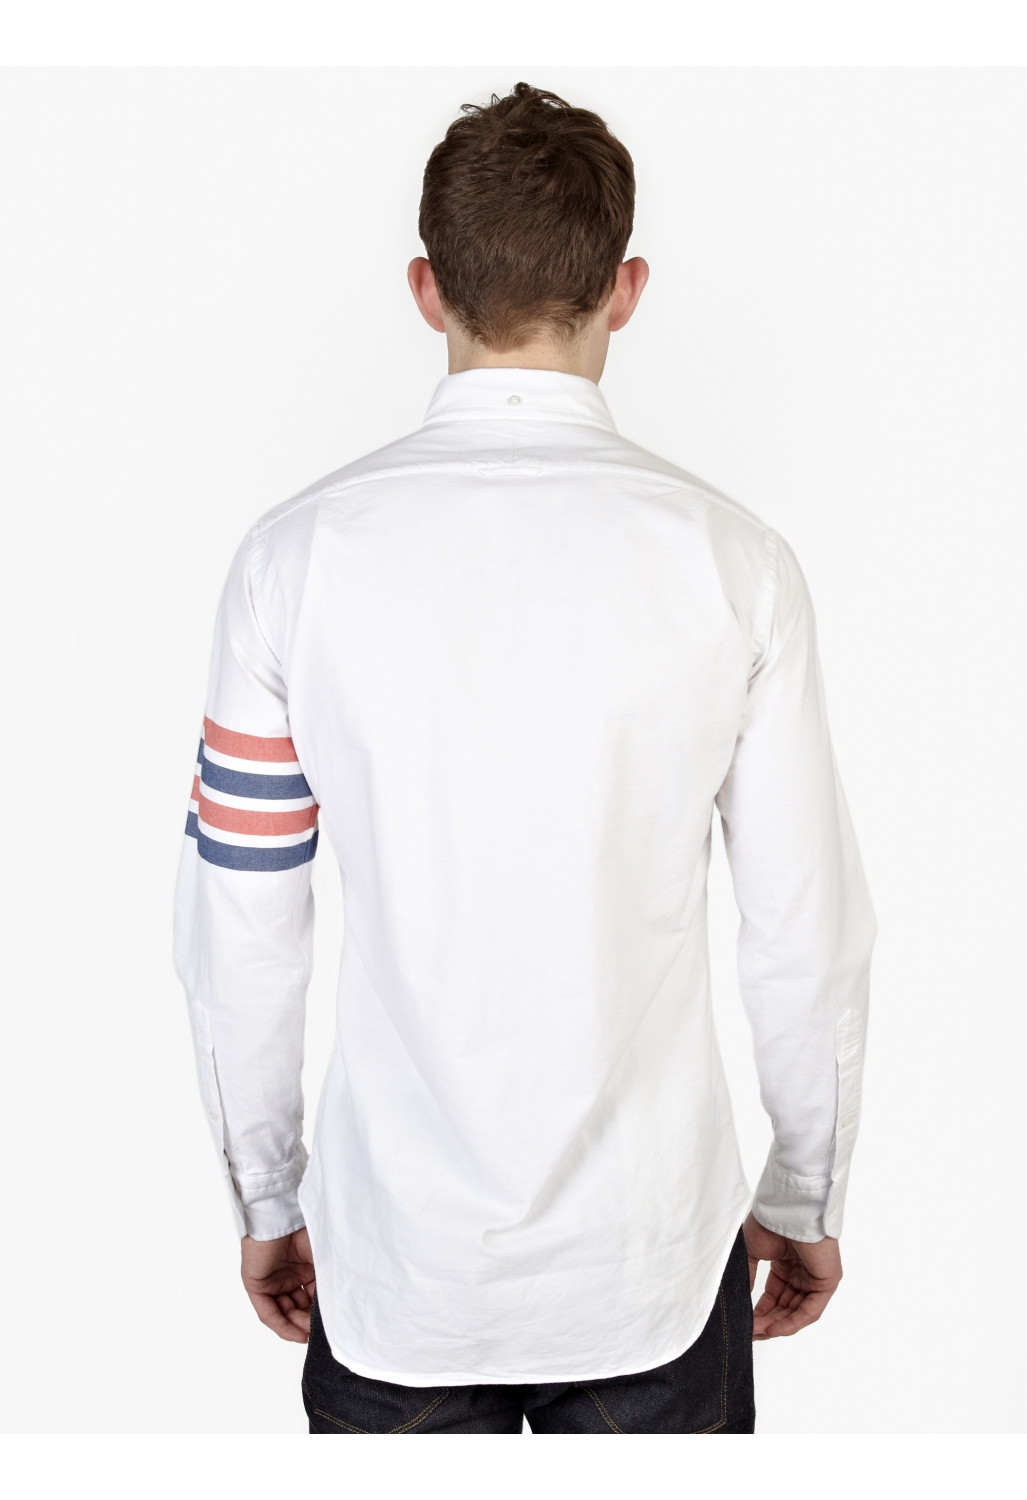 Thom Browne Men S White Cotton Oxford Shirt In Multicolor